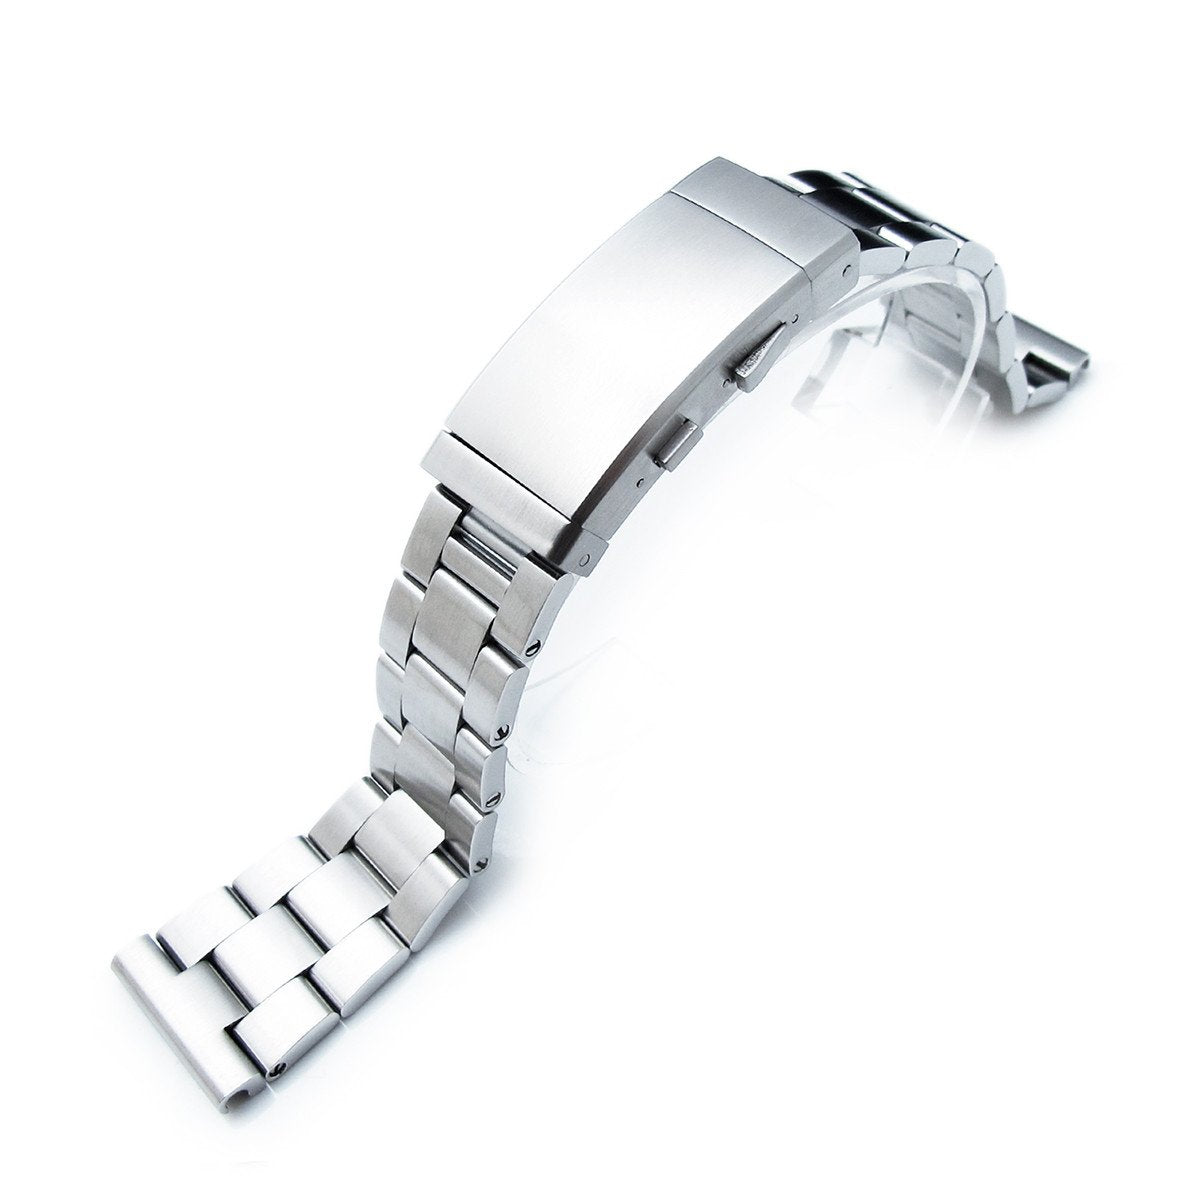 19mm 20mm or 21mm Super-O Boyer Solid Stainless Steel Straight End Watch Band Brushed Wetsuit Clasp Strapcode Watch Bands